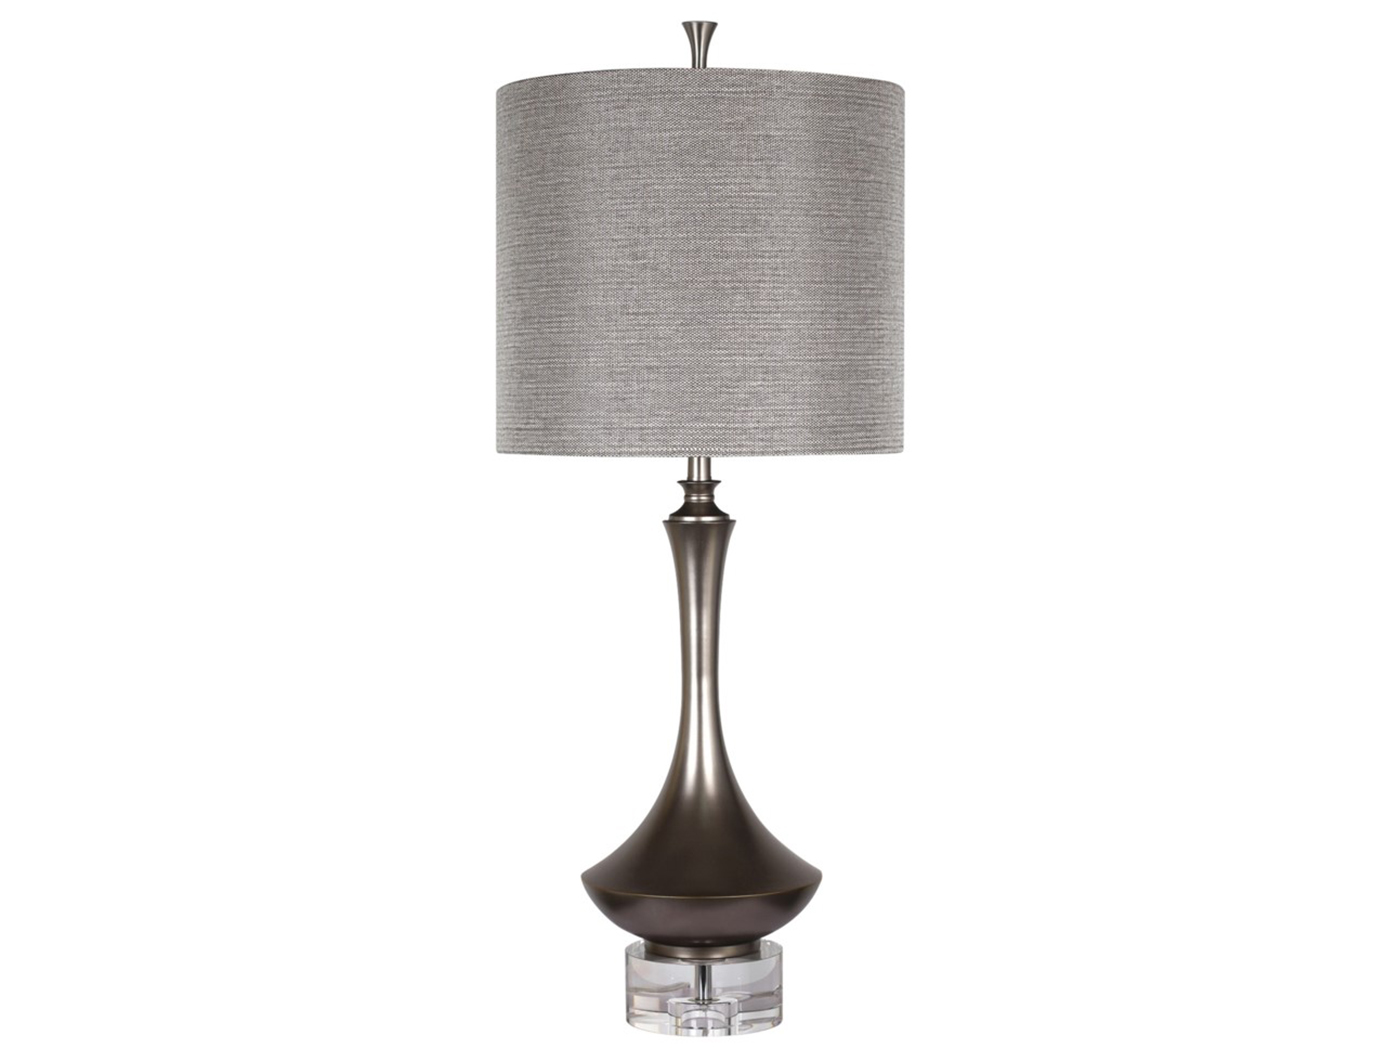 "Charcoal Metal Table Lamp 40.5""H"